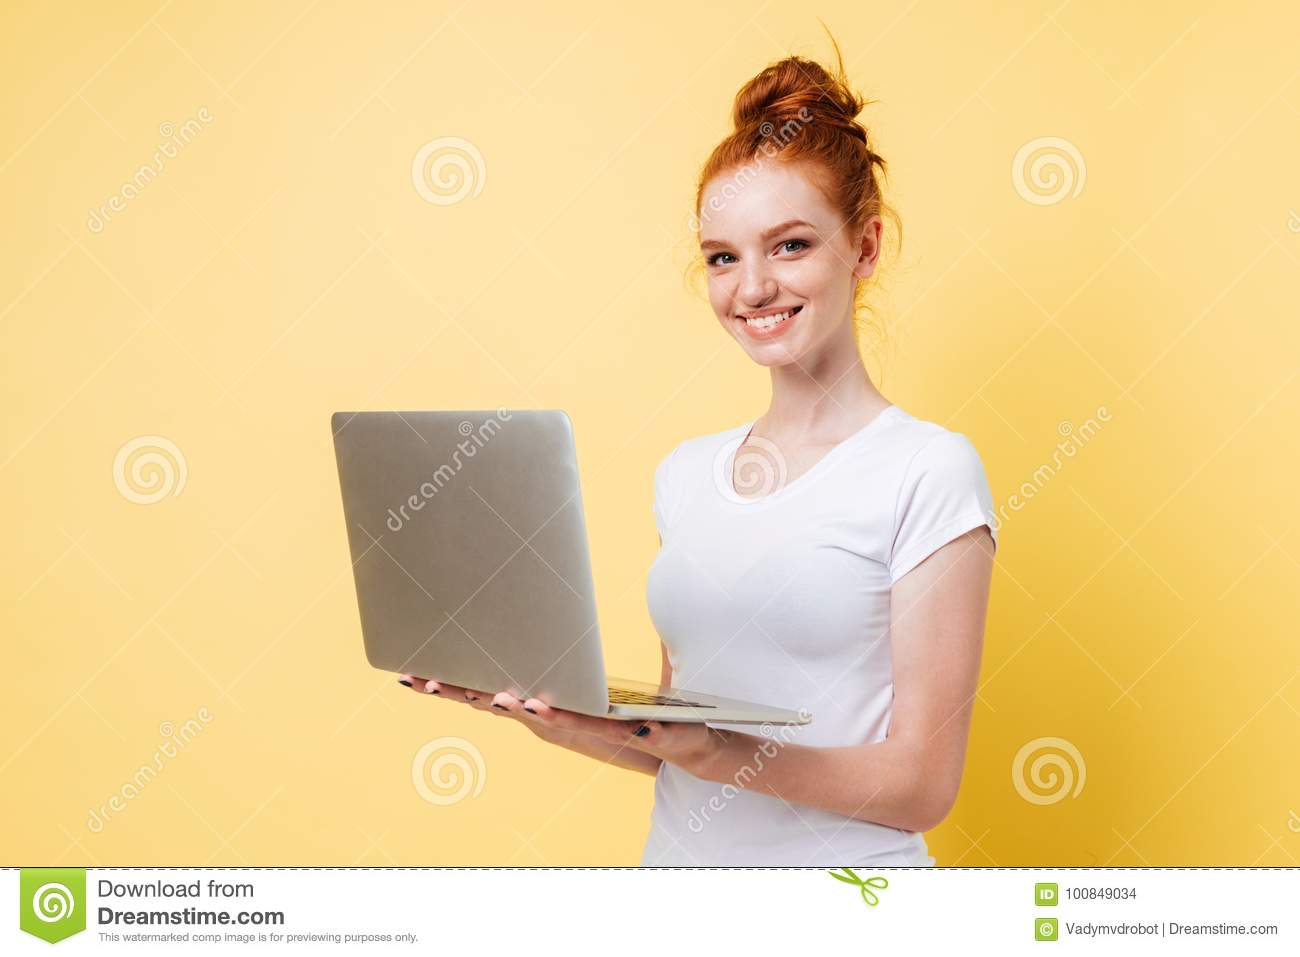 Smiling ginger woman in t-shirt holding laptop computer